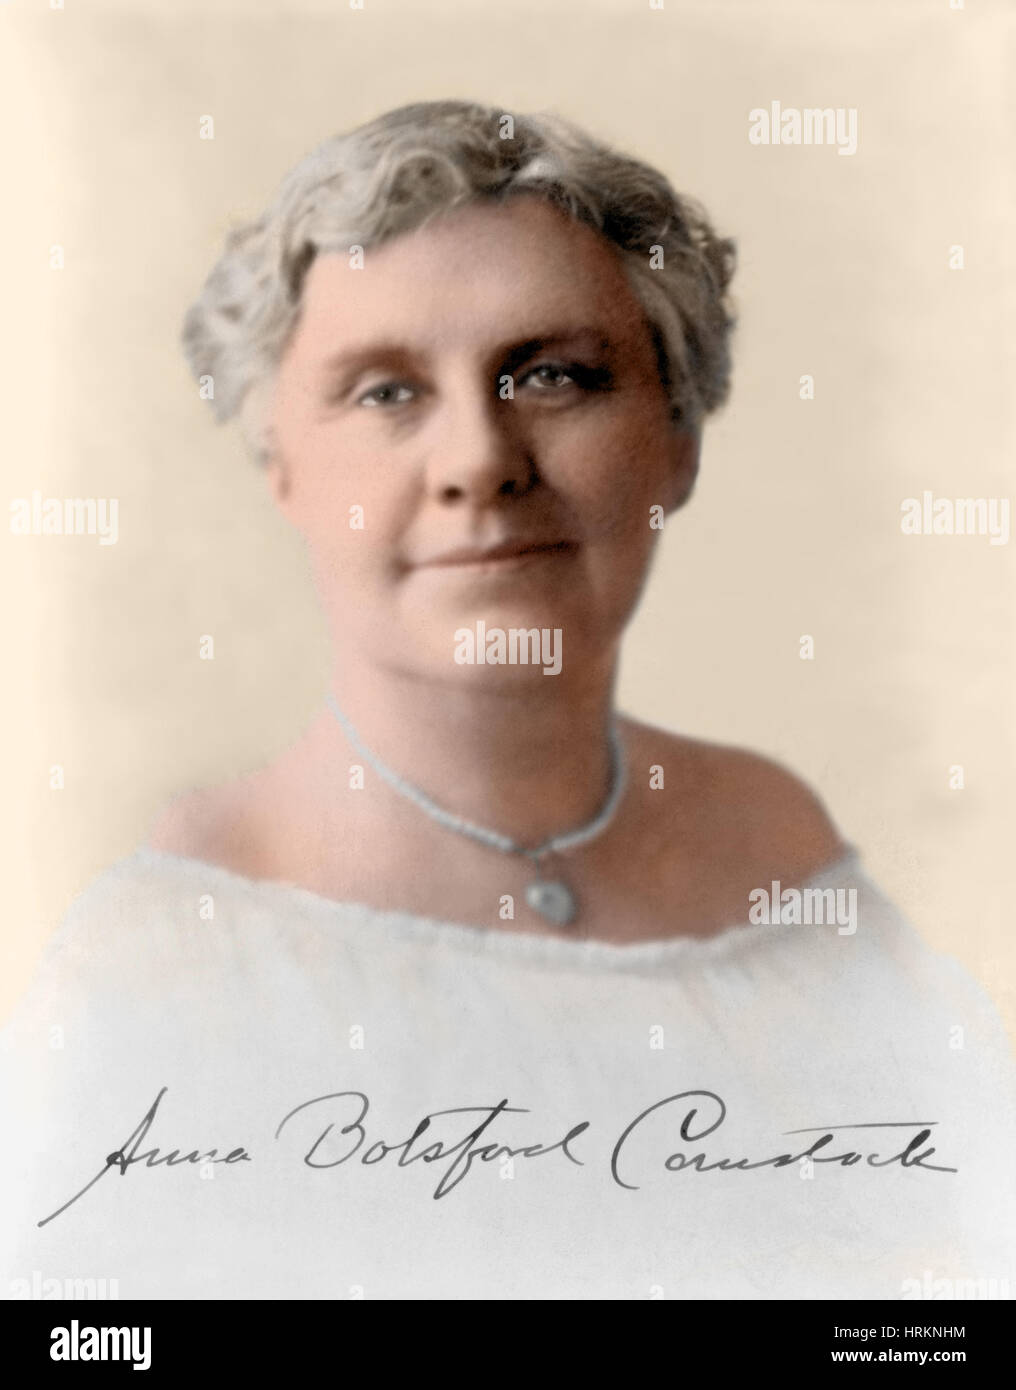 Anna Comstock, American Artist and Educator - Stock Image